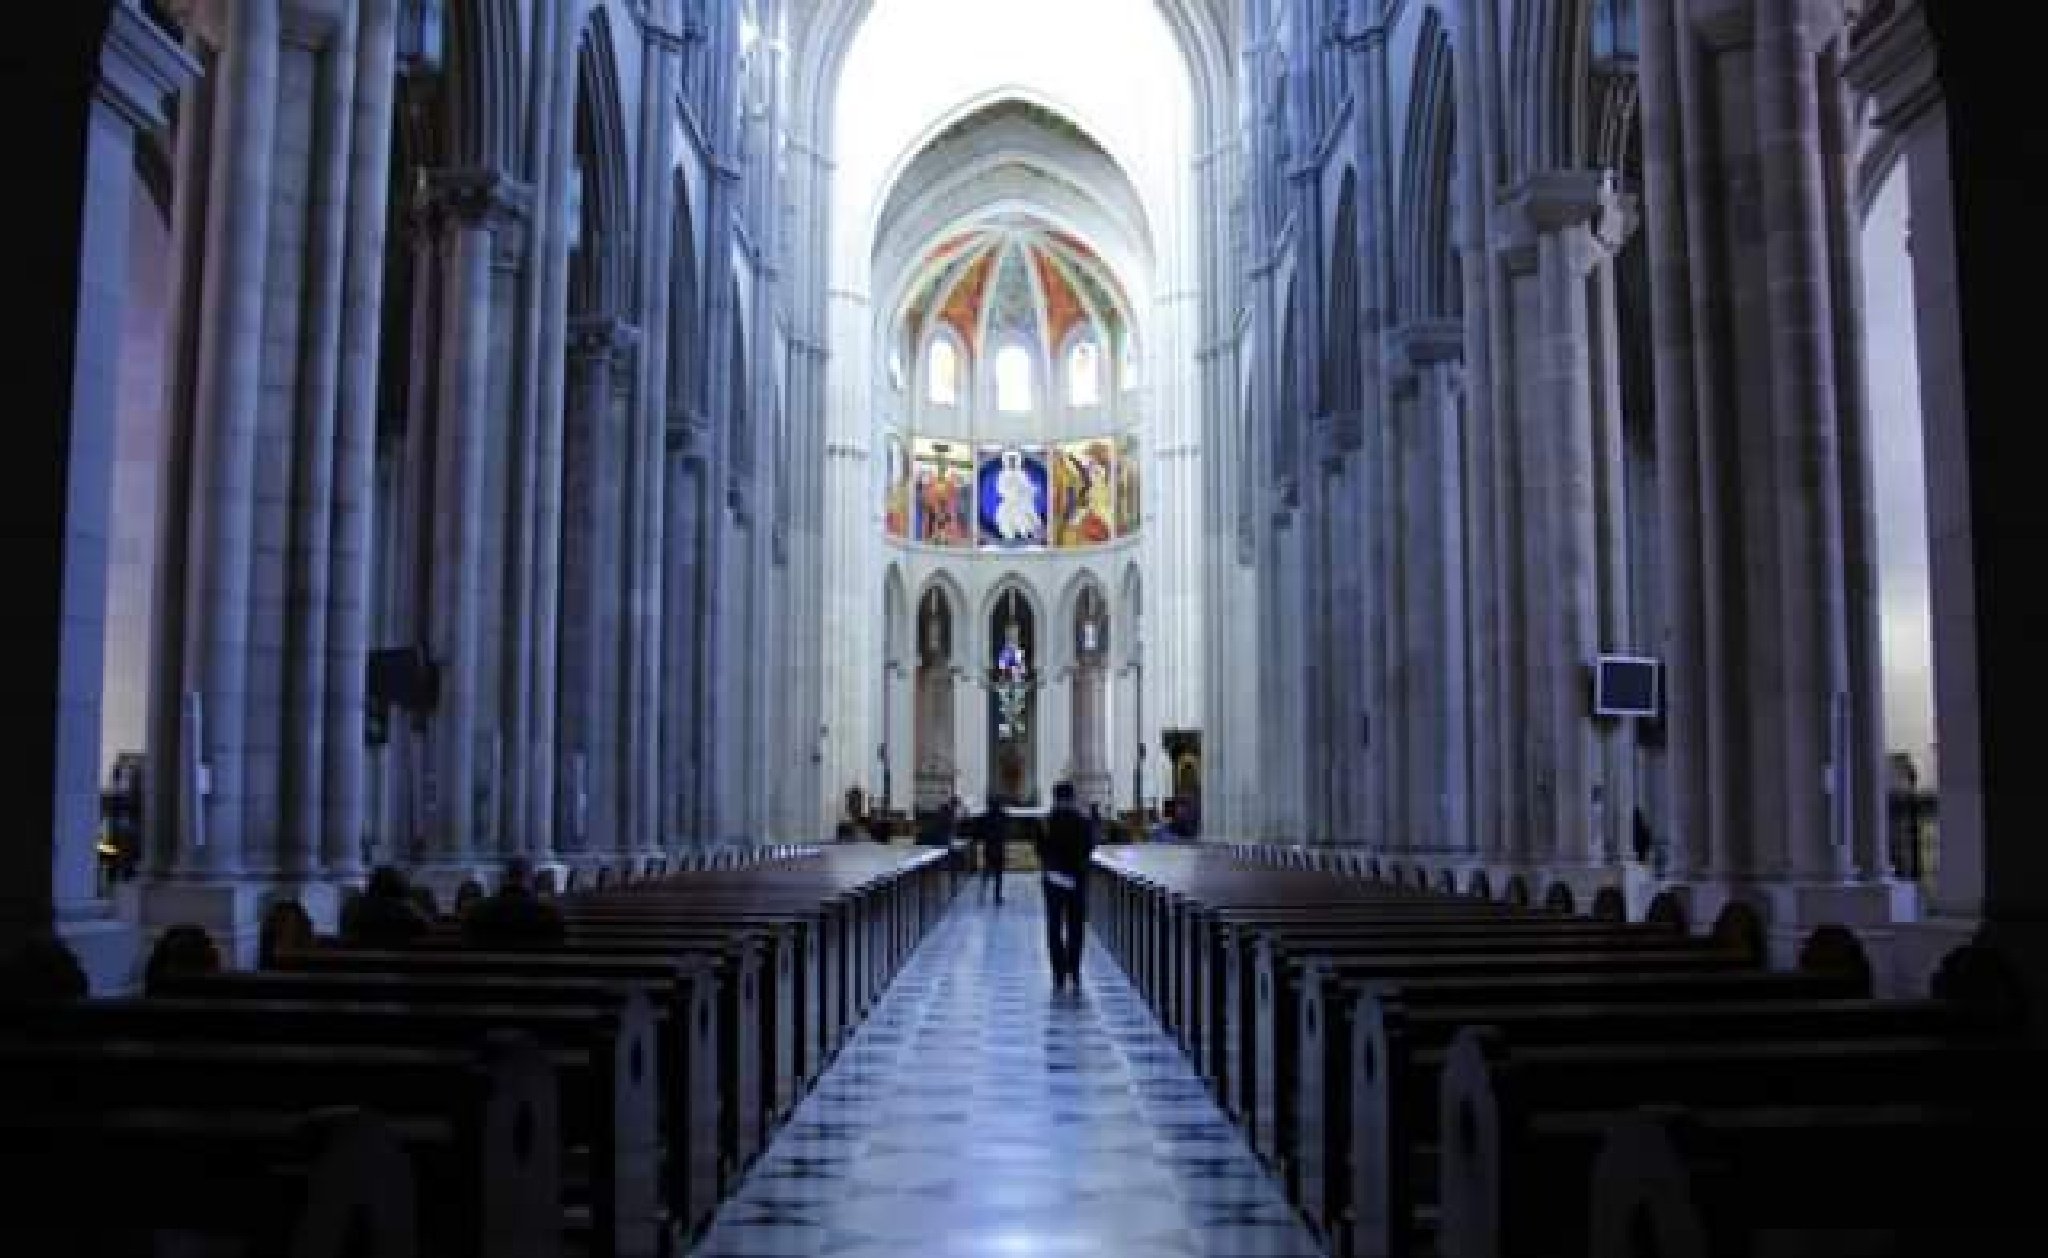 inside the Almudena Cathedral, Madrid by thierrylorenzo